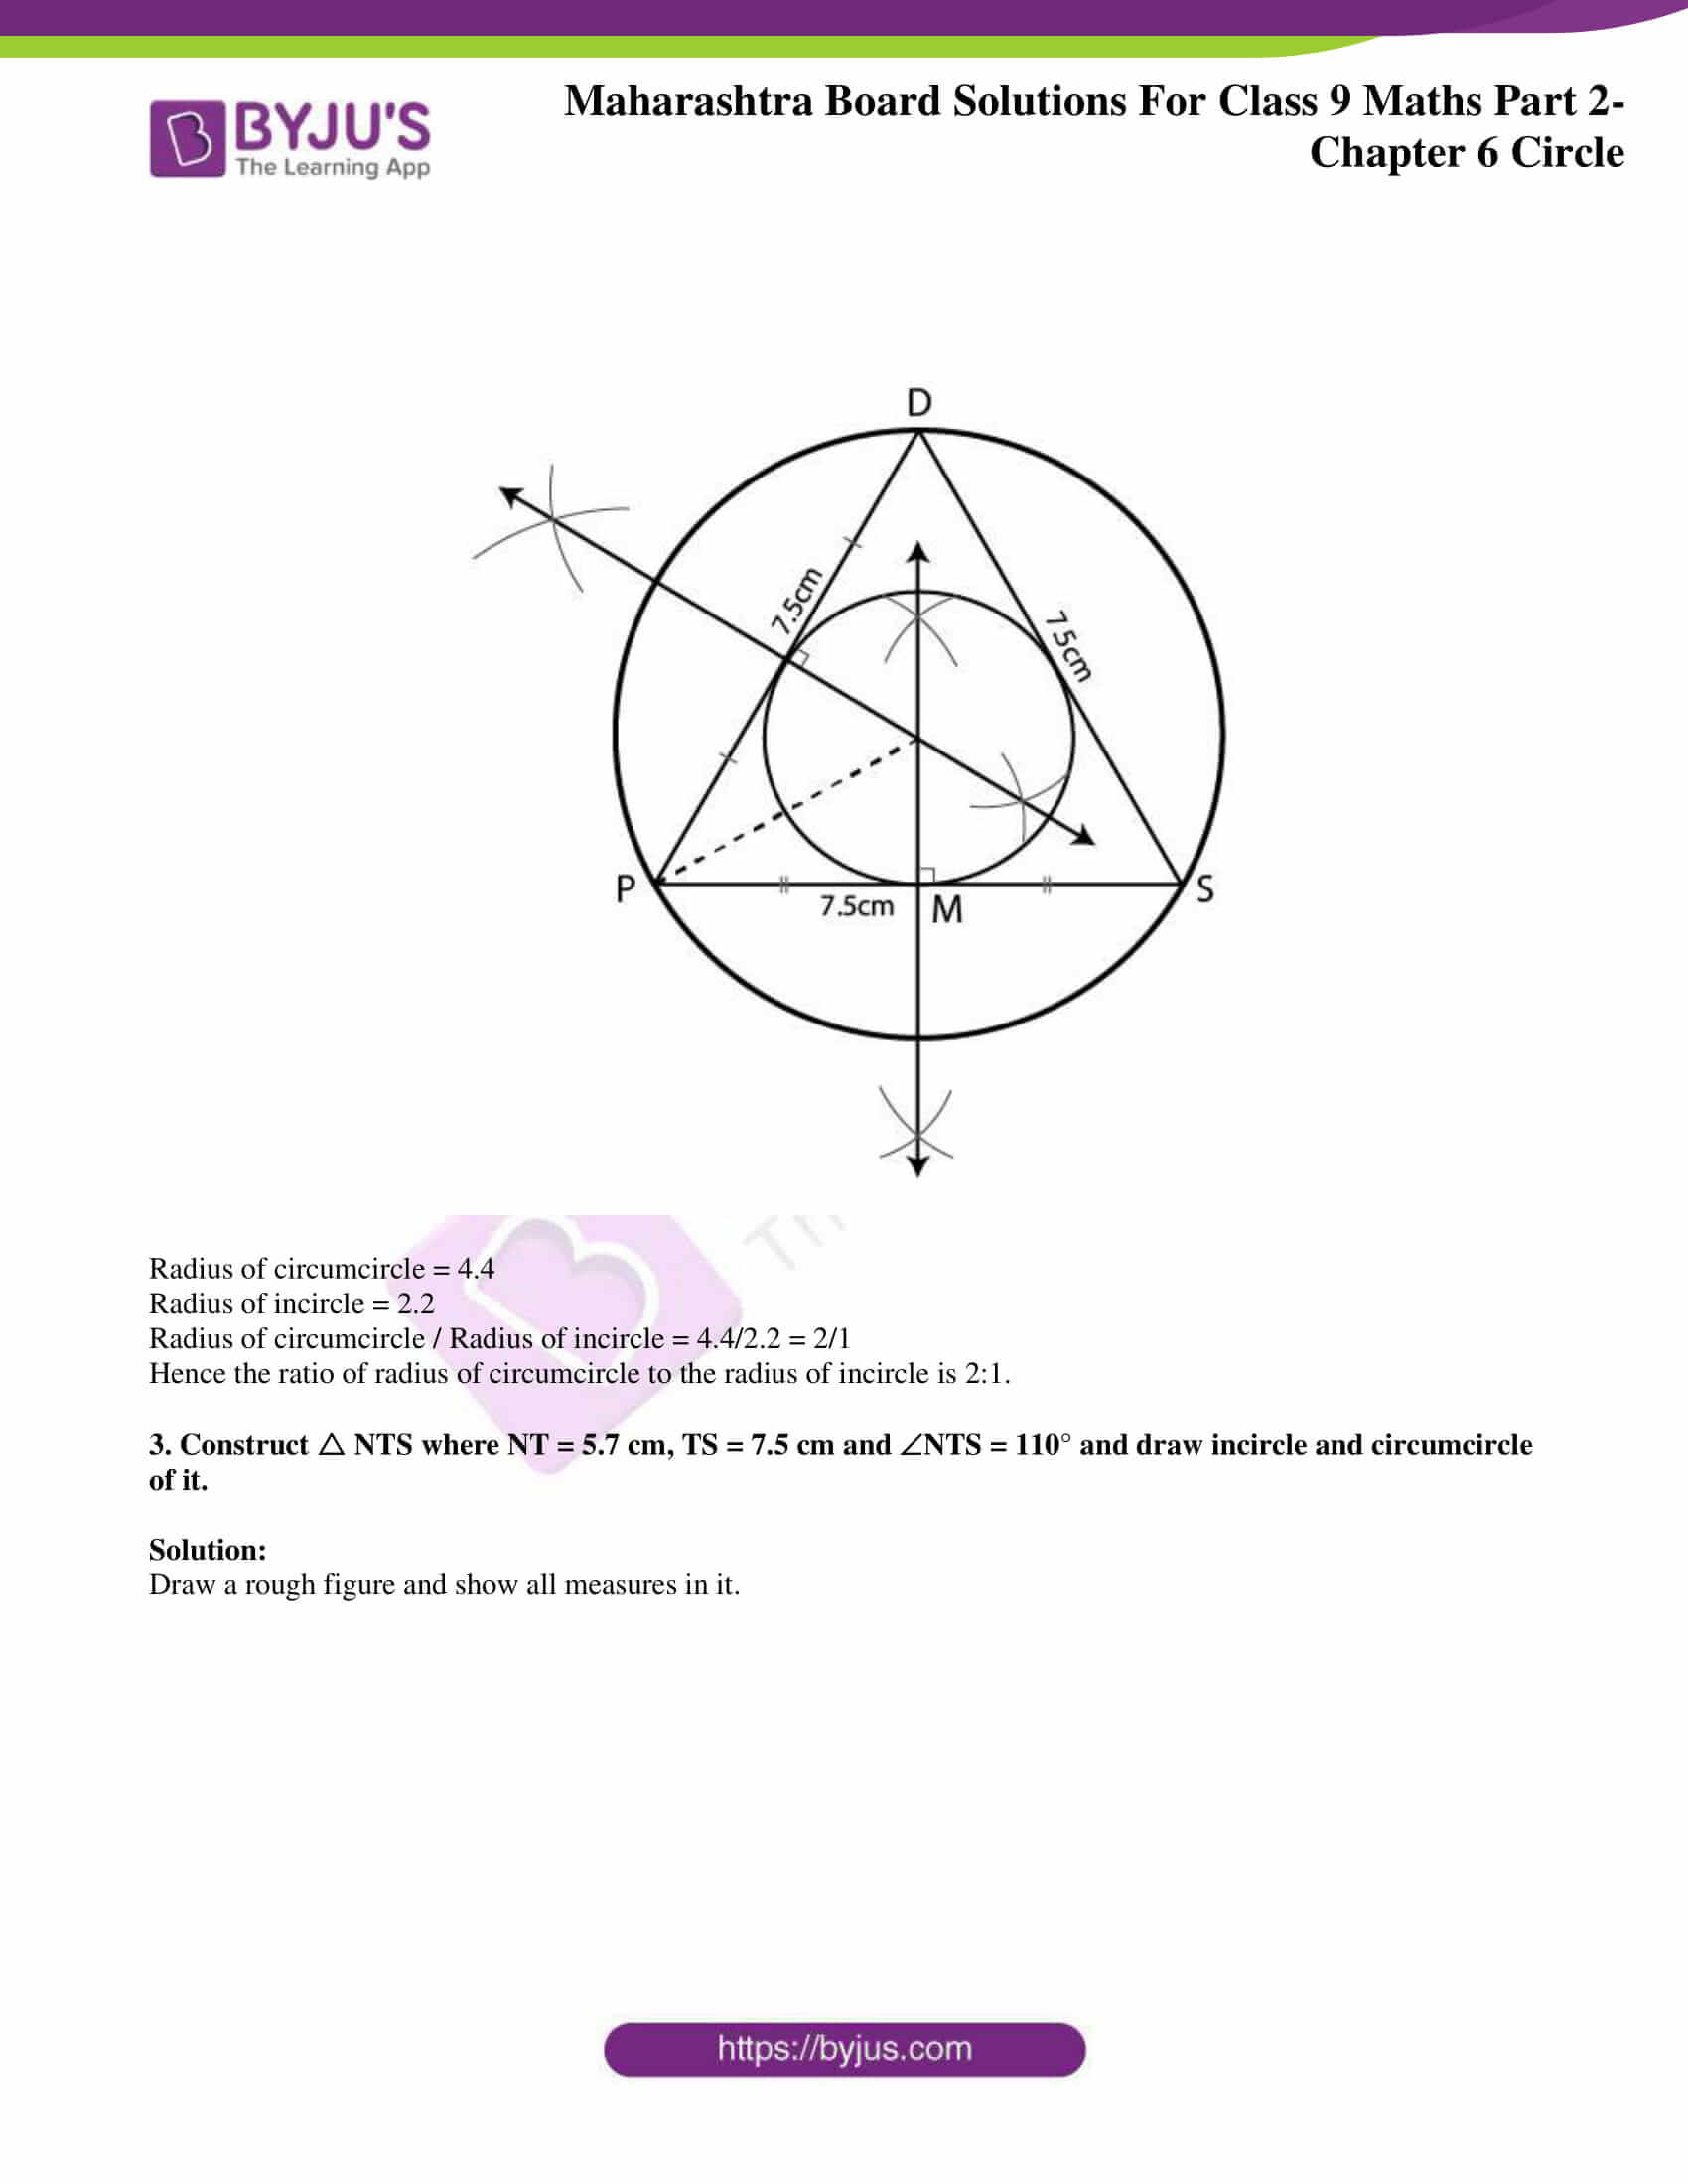 msbshse solutions for class 9 maths part 2 chapter 6 24